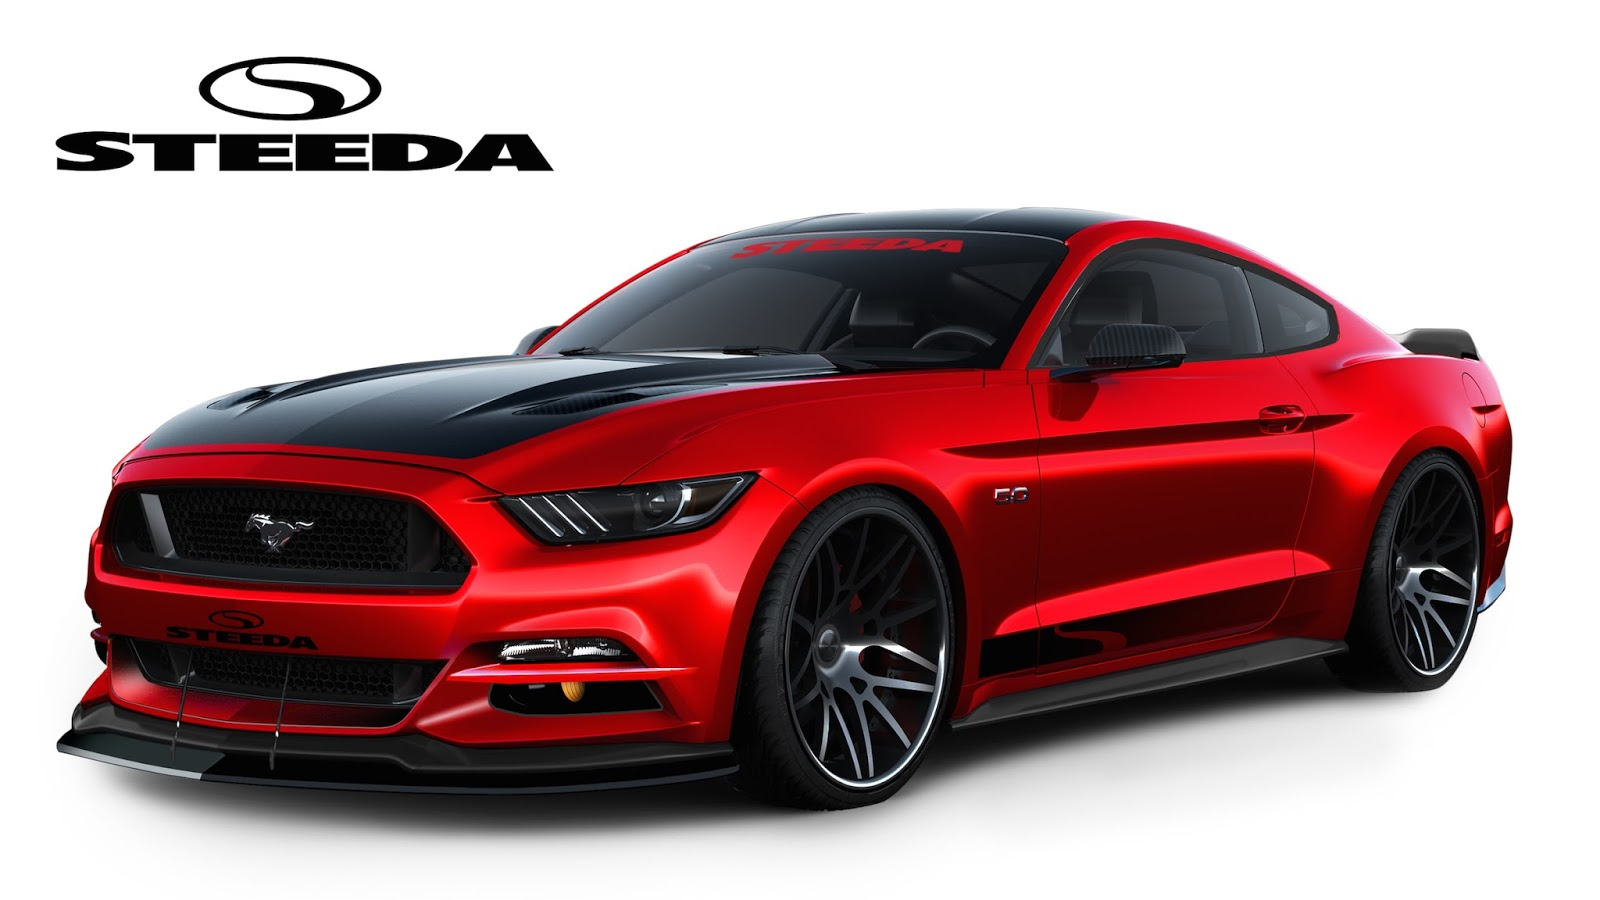 2016 ford gt engine with Steeda Previews Upgraded 2015 Ford Mustang on Lamborghini V12 Engine On A Motorcycle Sounds Raging Cool Video 89803 also 1970 Dodge Hemi Coro  Rt in addition 2015 FORD MUSTANG GT CUSTOM FASTBACK 205830 moreover Steeda Previews Upgraded 2015 Ford Mustang further Rare Ford Mustangs The 1968 Shelby Gt500 Kr.